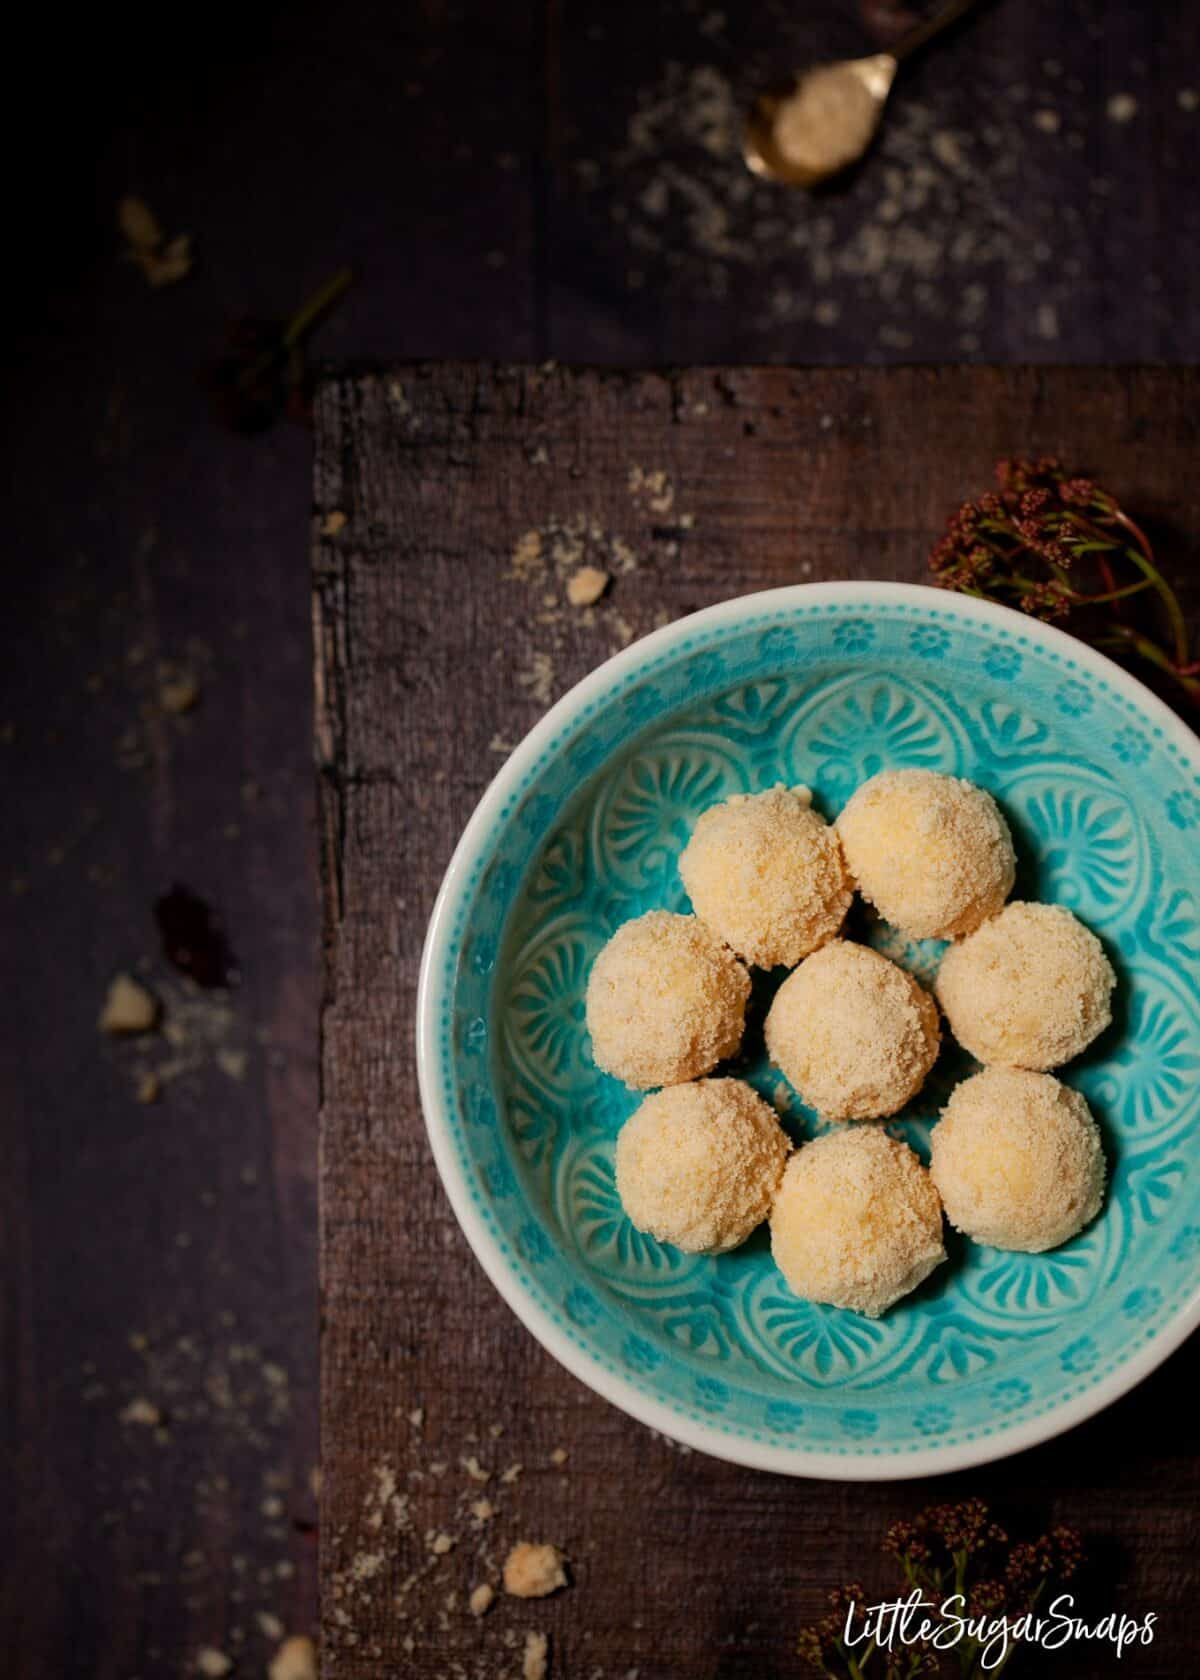 A blue bowl holding white chocolate truffles.